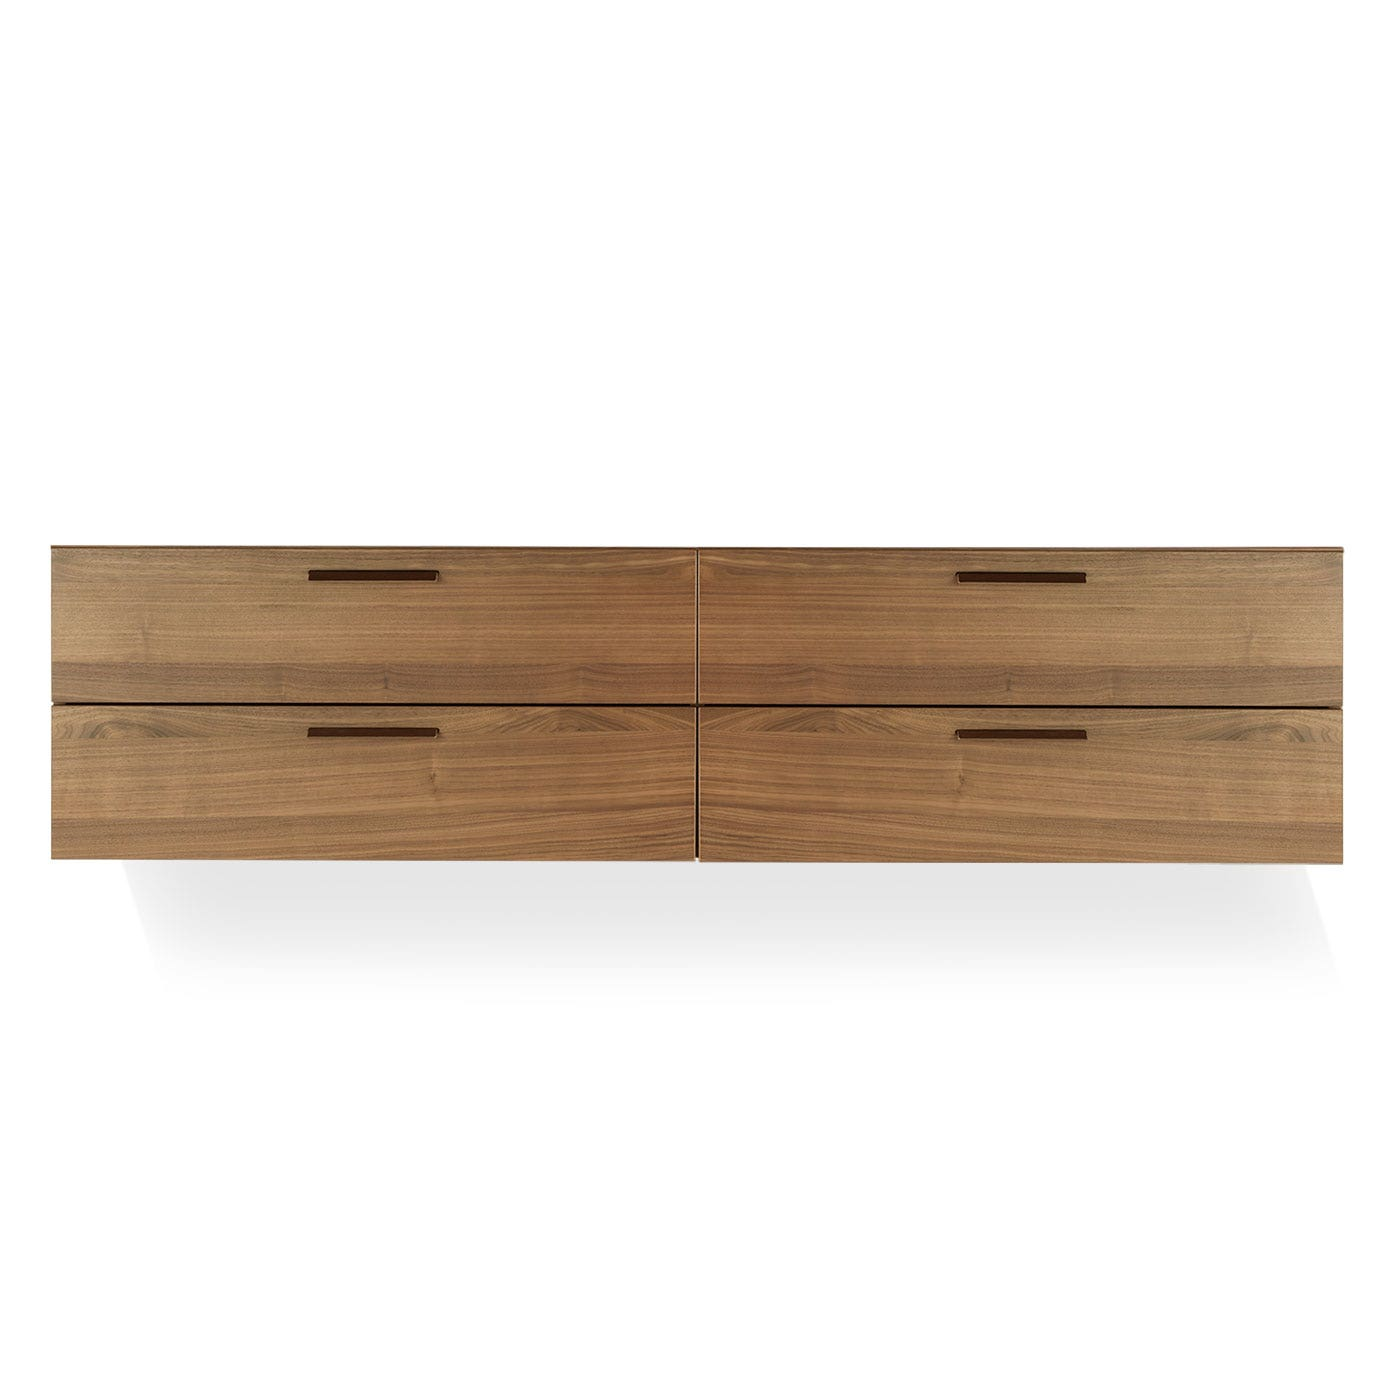 Charmant Walnut. Shale 4 Drawer Wall Mounted Cabinet